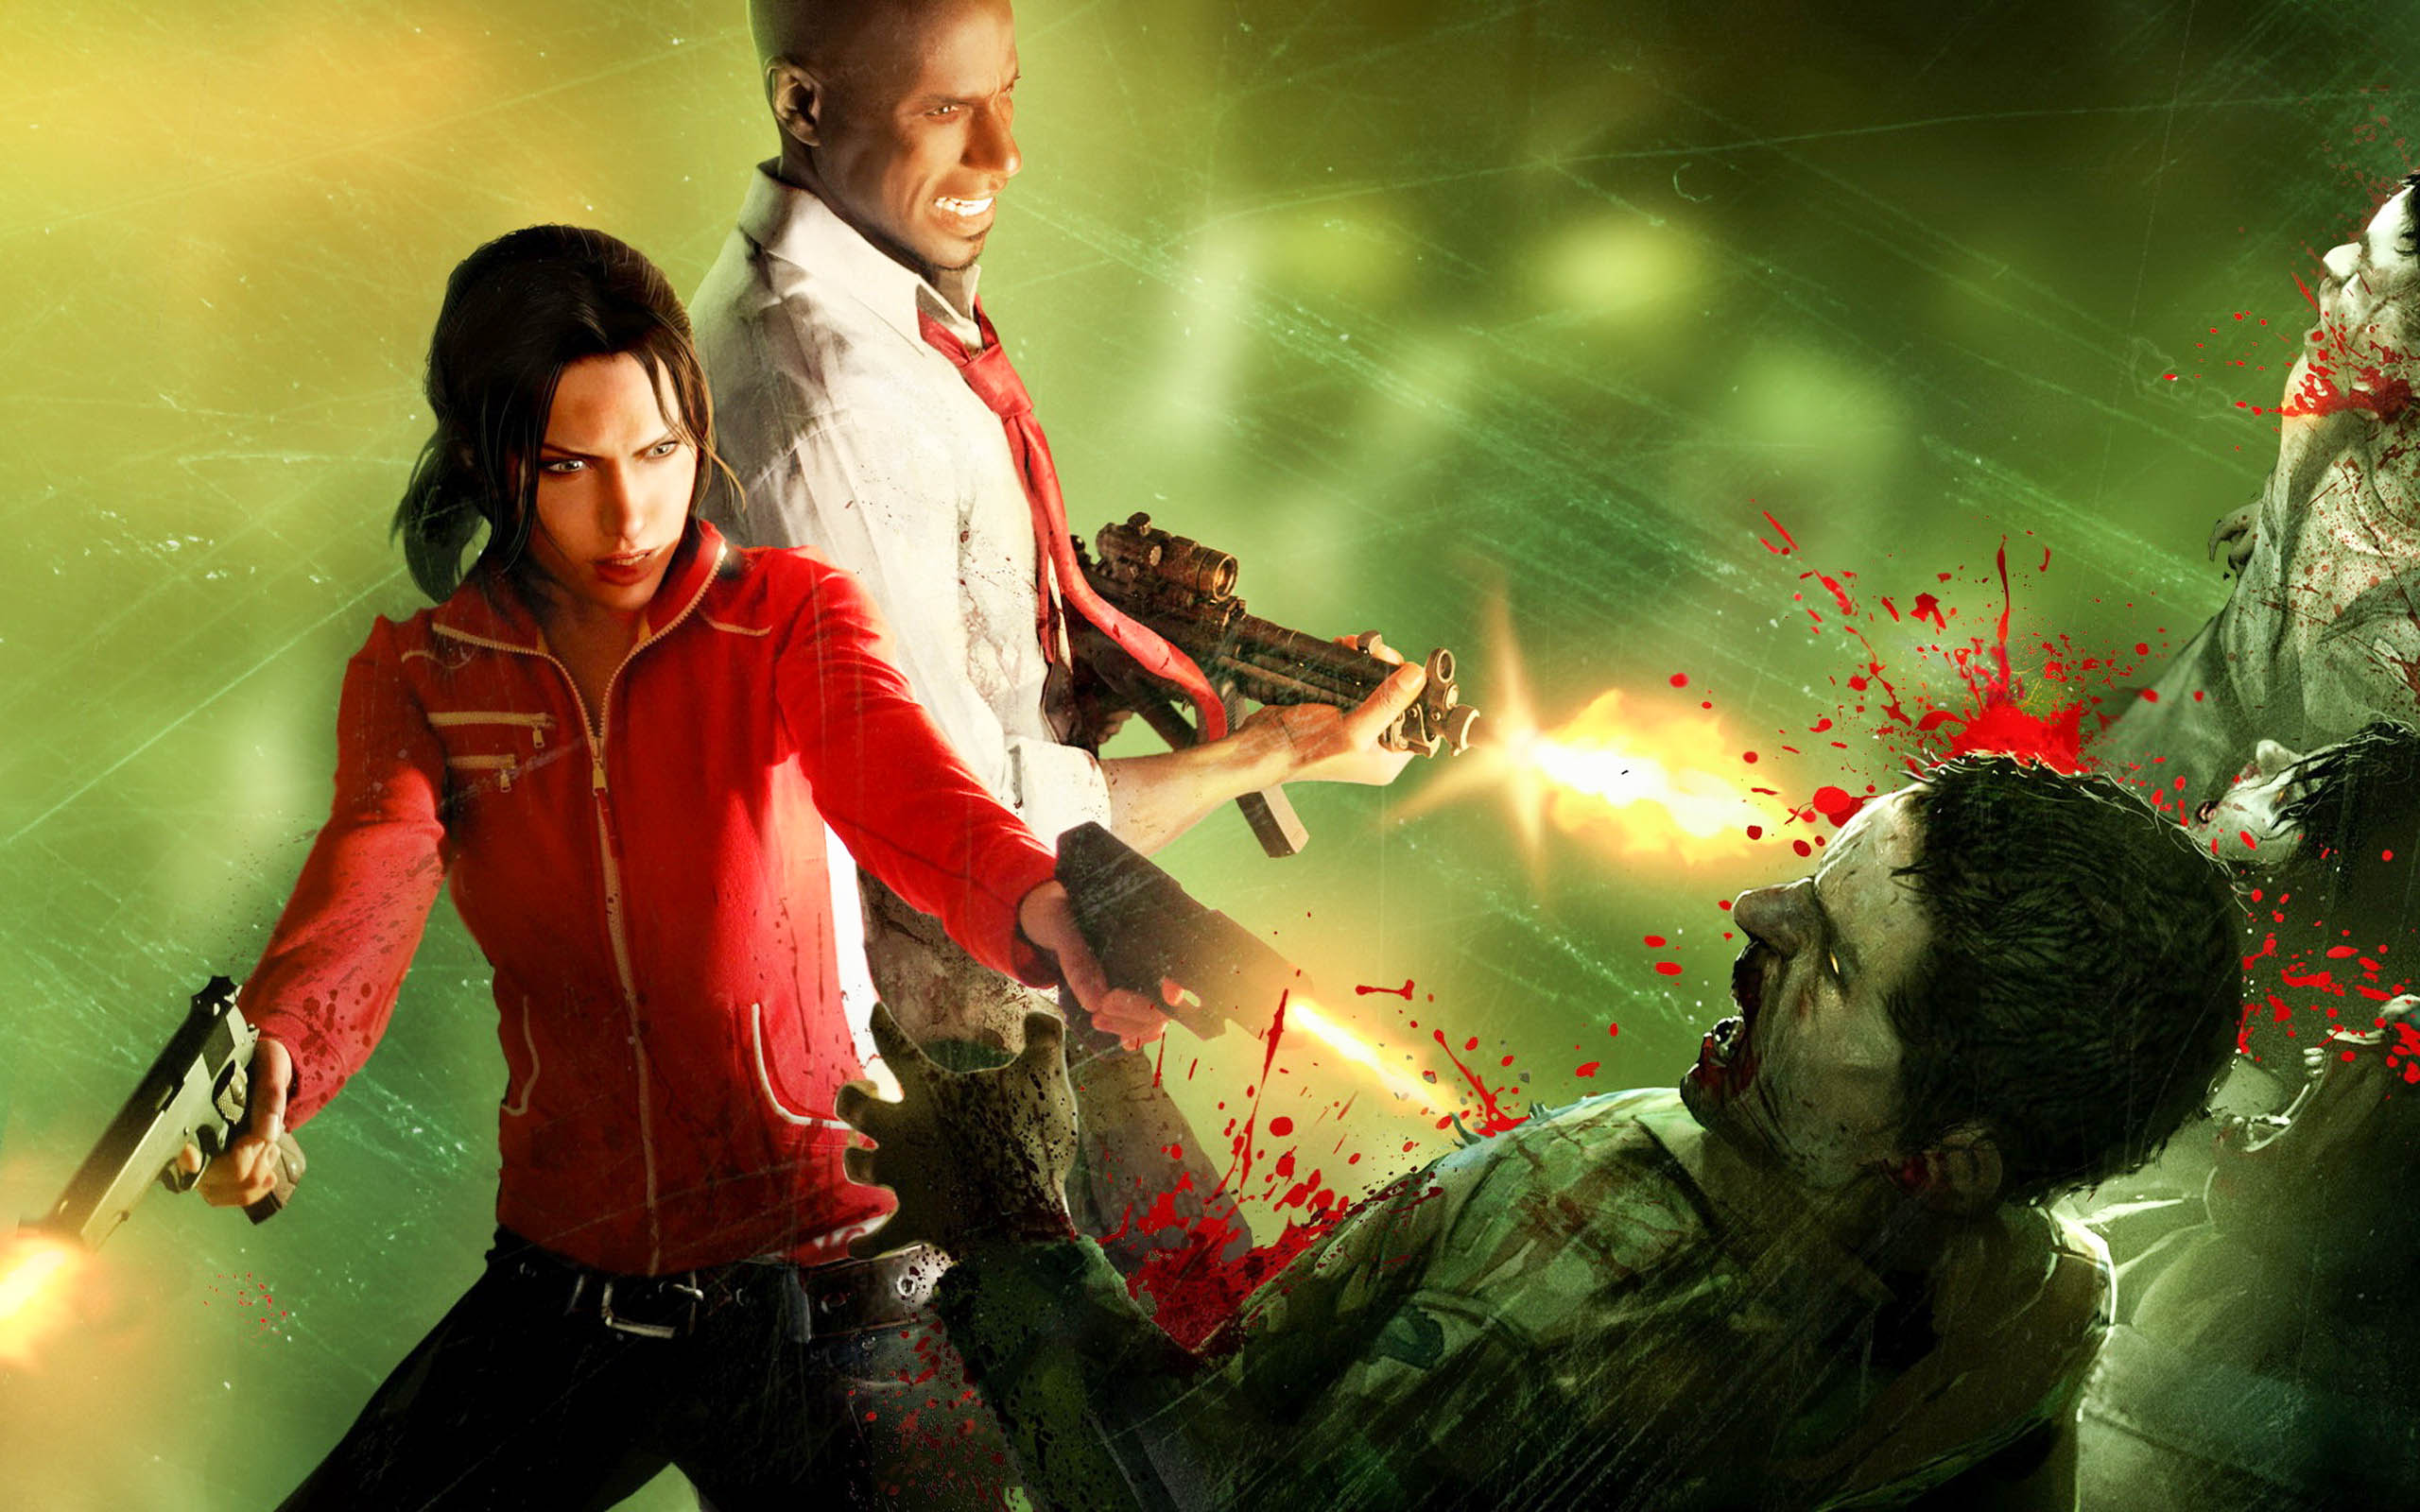 Awesome Hd Wallpapers For Mac Left 4 Dead Awesome Wallpapers High Definition All Hd